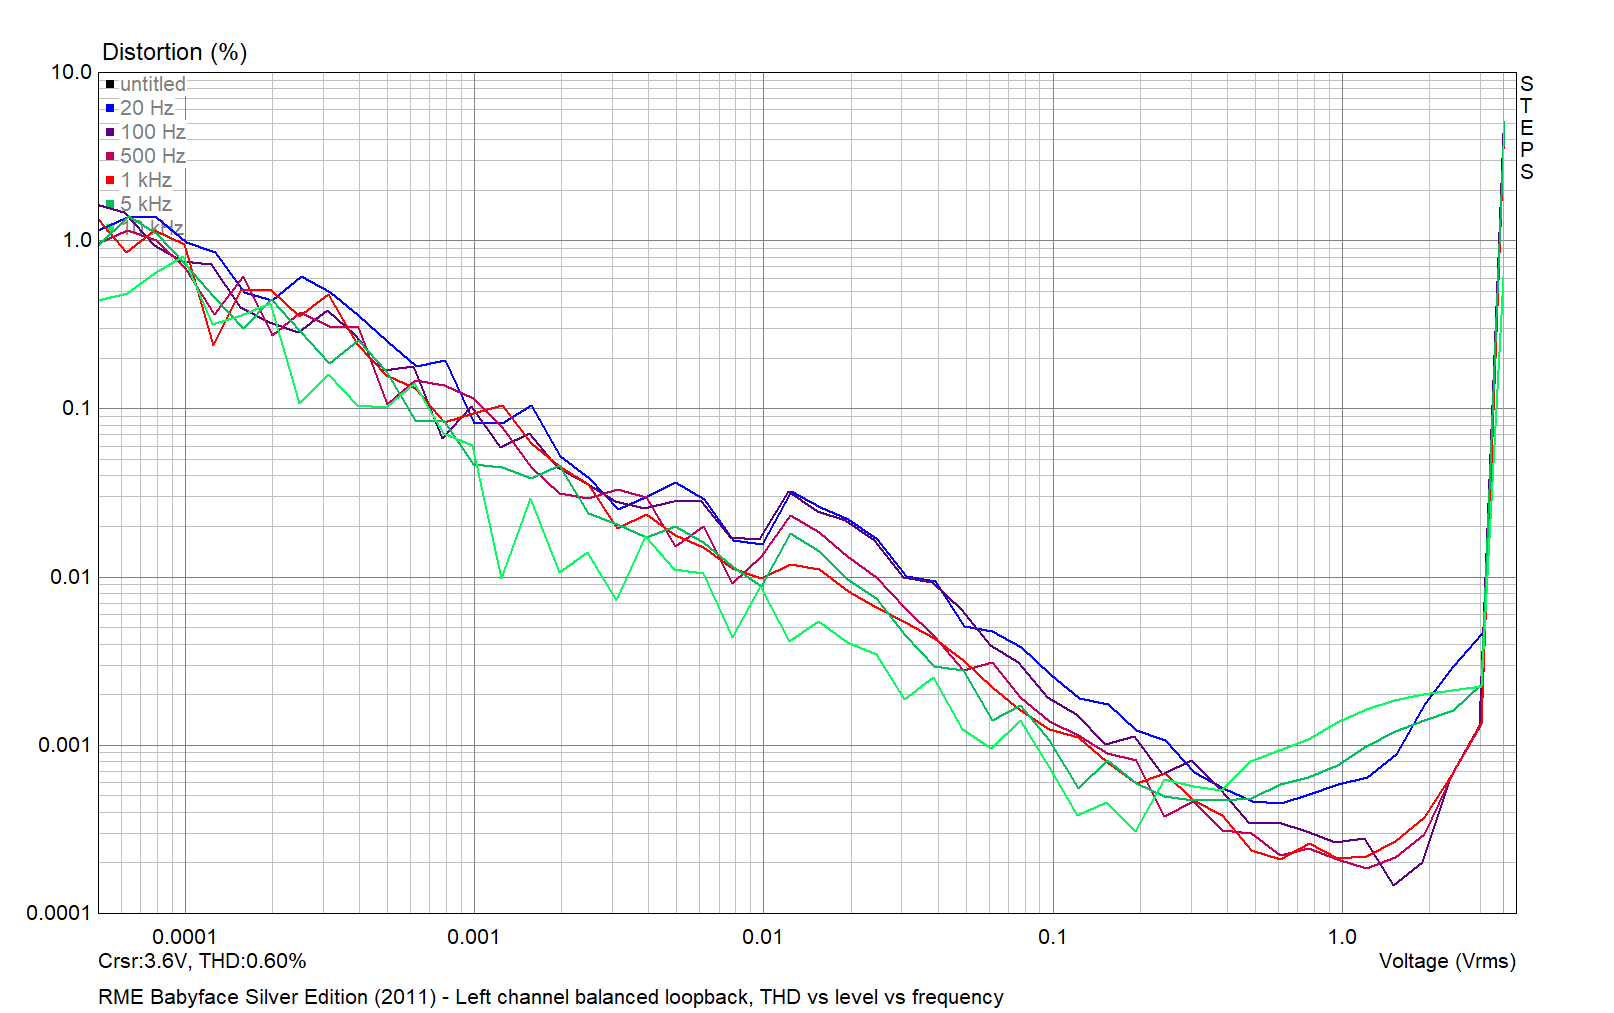 RME Babyface Silver Edition 2011 - AN1 balanced THD vs level vs frequency 2021-04-01.png